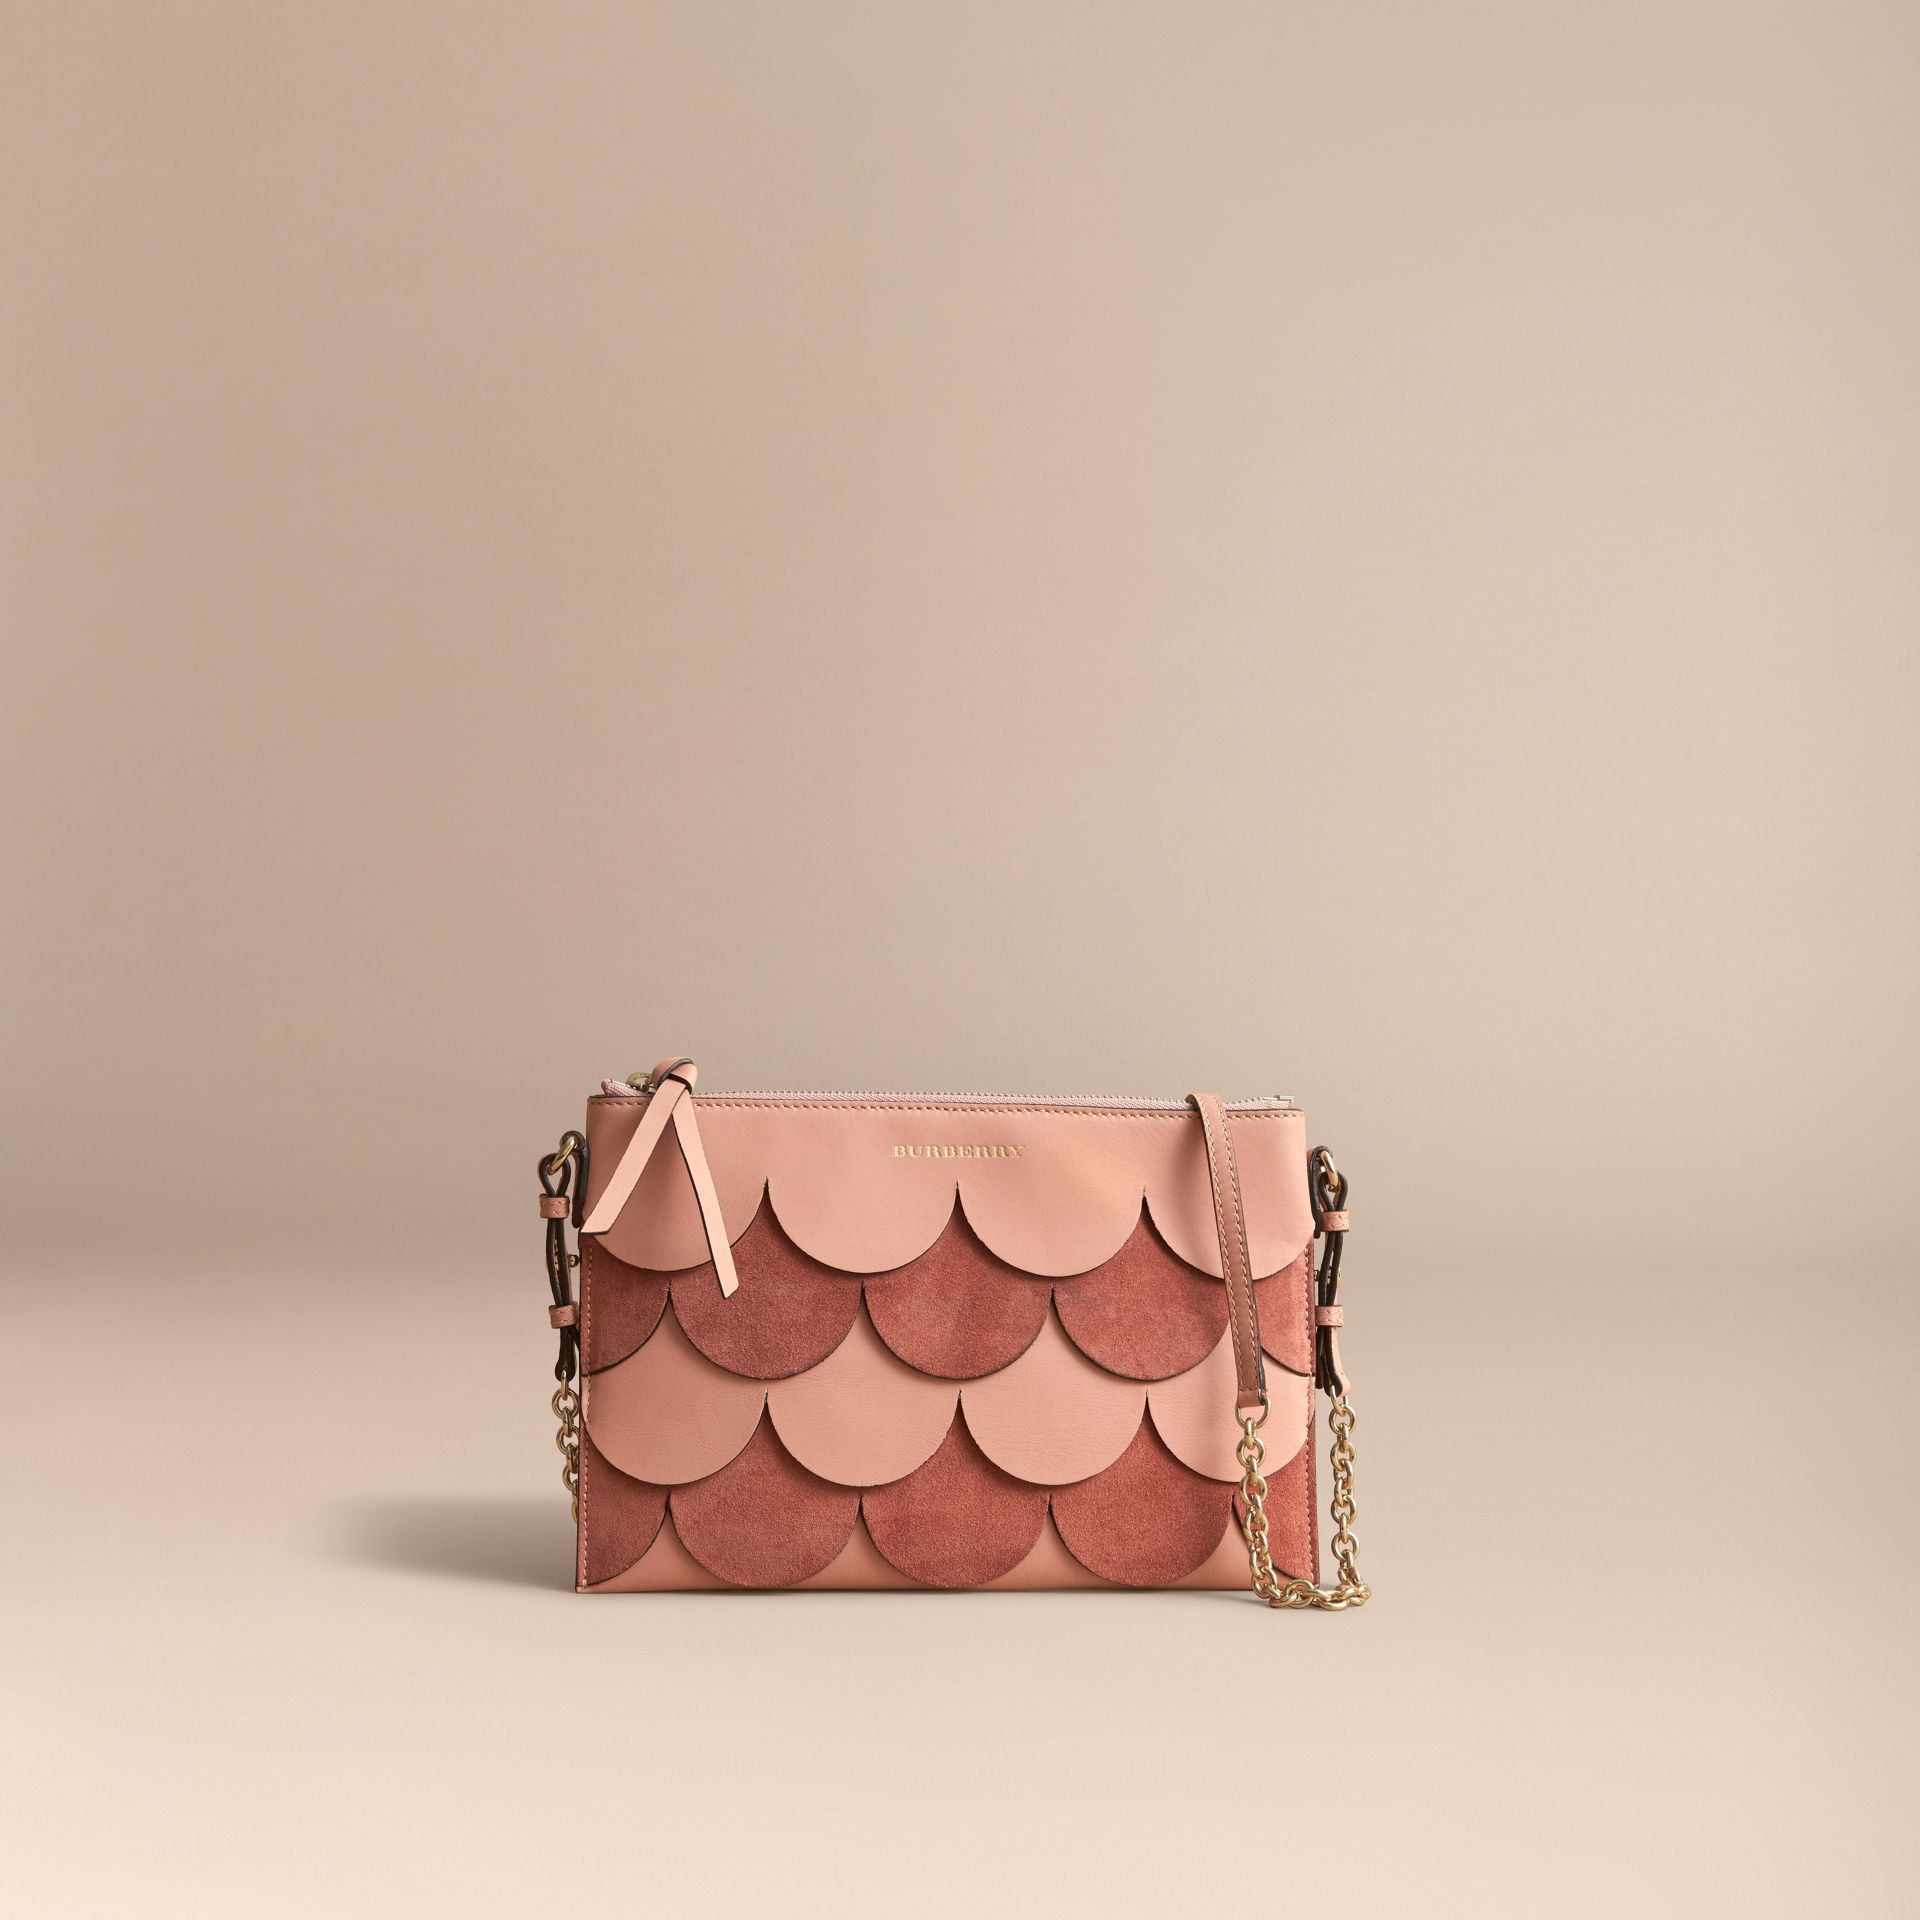 Two-tone Scalloped Leather and Suede Clutch Bag in Ash Rose - Women | Burberry Singapore - gallery image 8